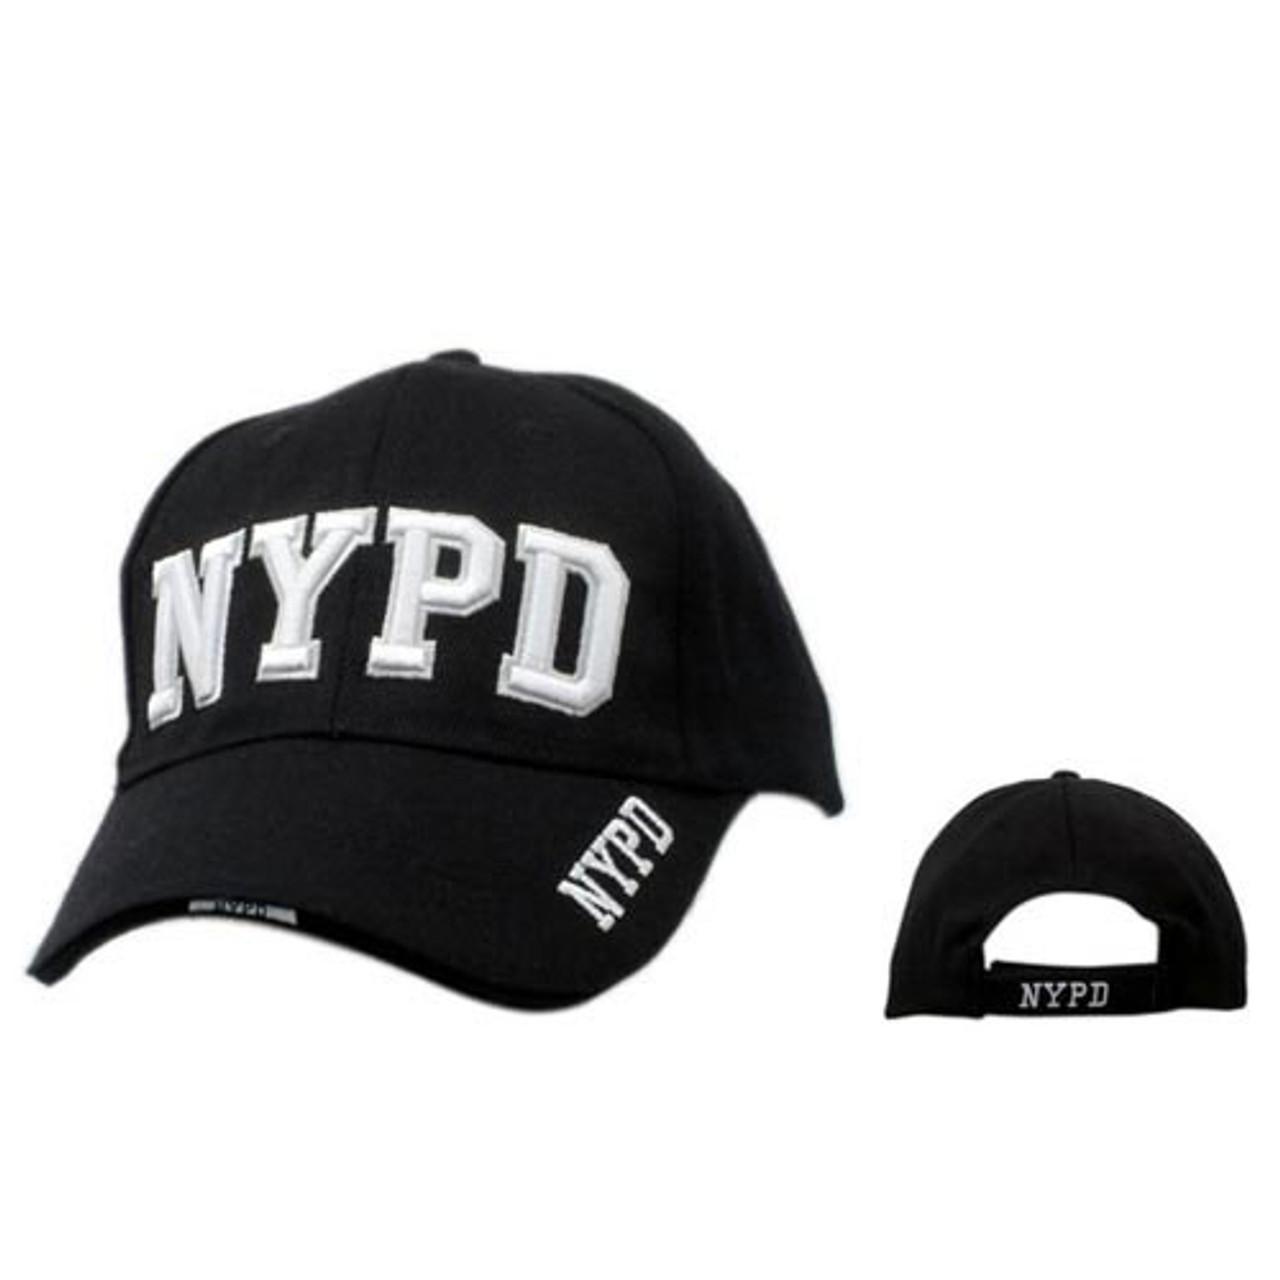 Wholesale Caps C151 NYPD